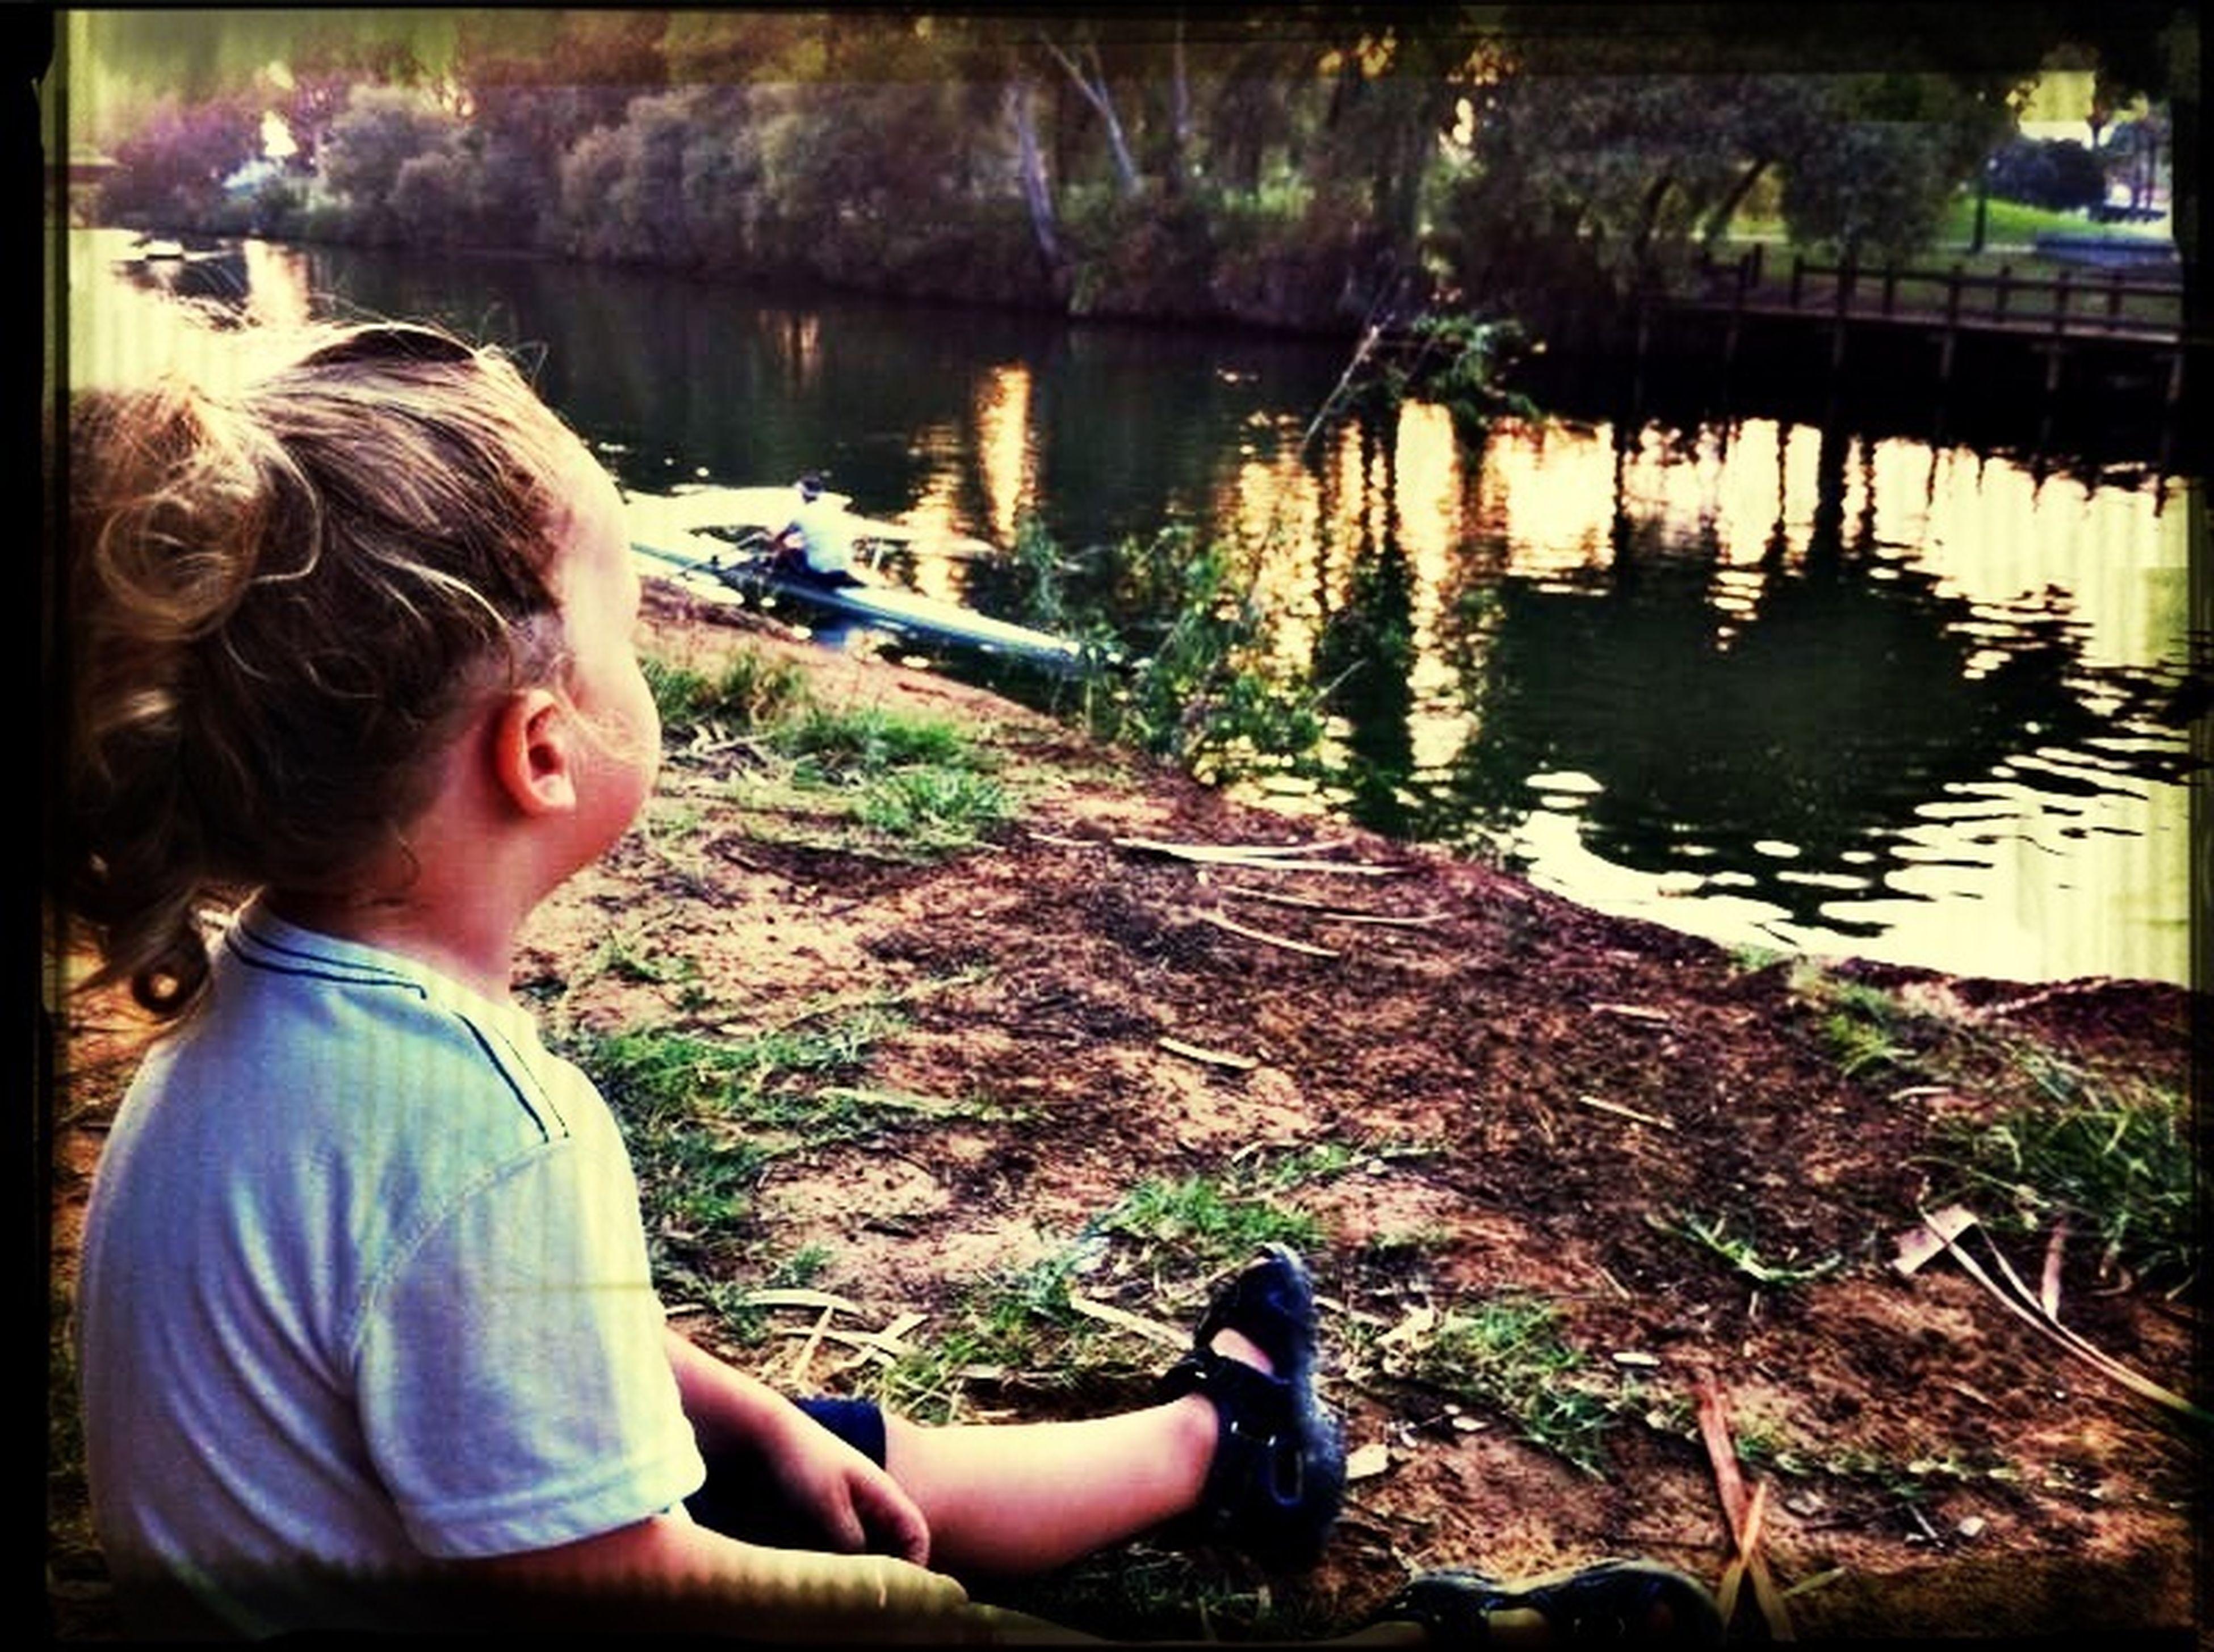 water, lifestyles, leisure activity, casual clothing, lake, sitting, person, bonding, togetherness, boys, childhood, three quarter length, elementary age, relaxation, river, lakeshore, transfer print